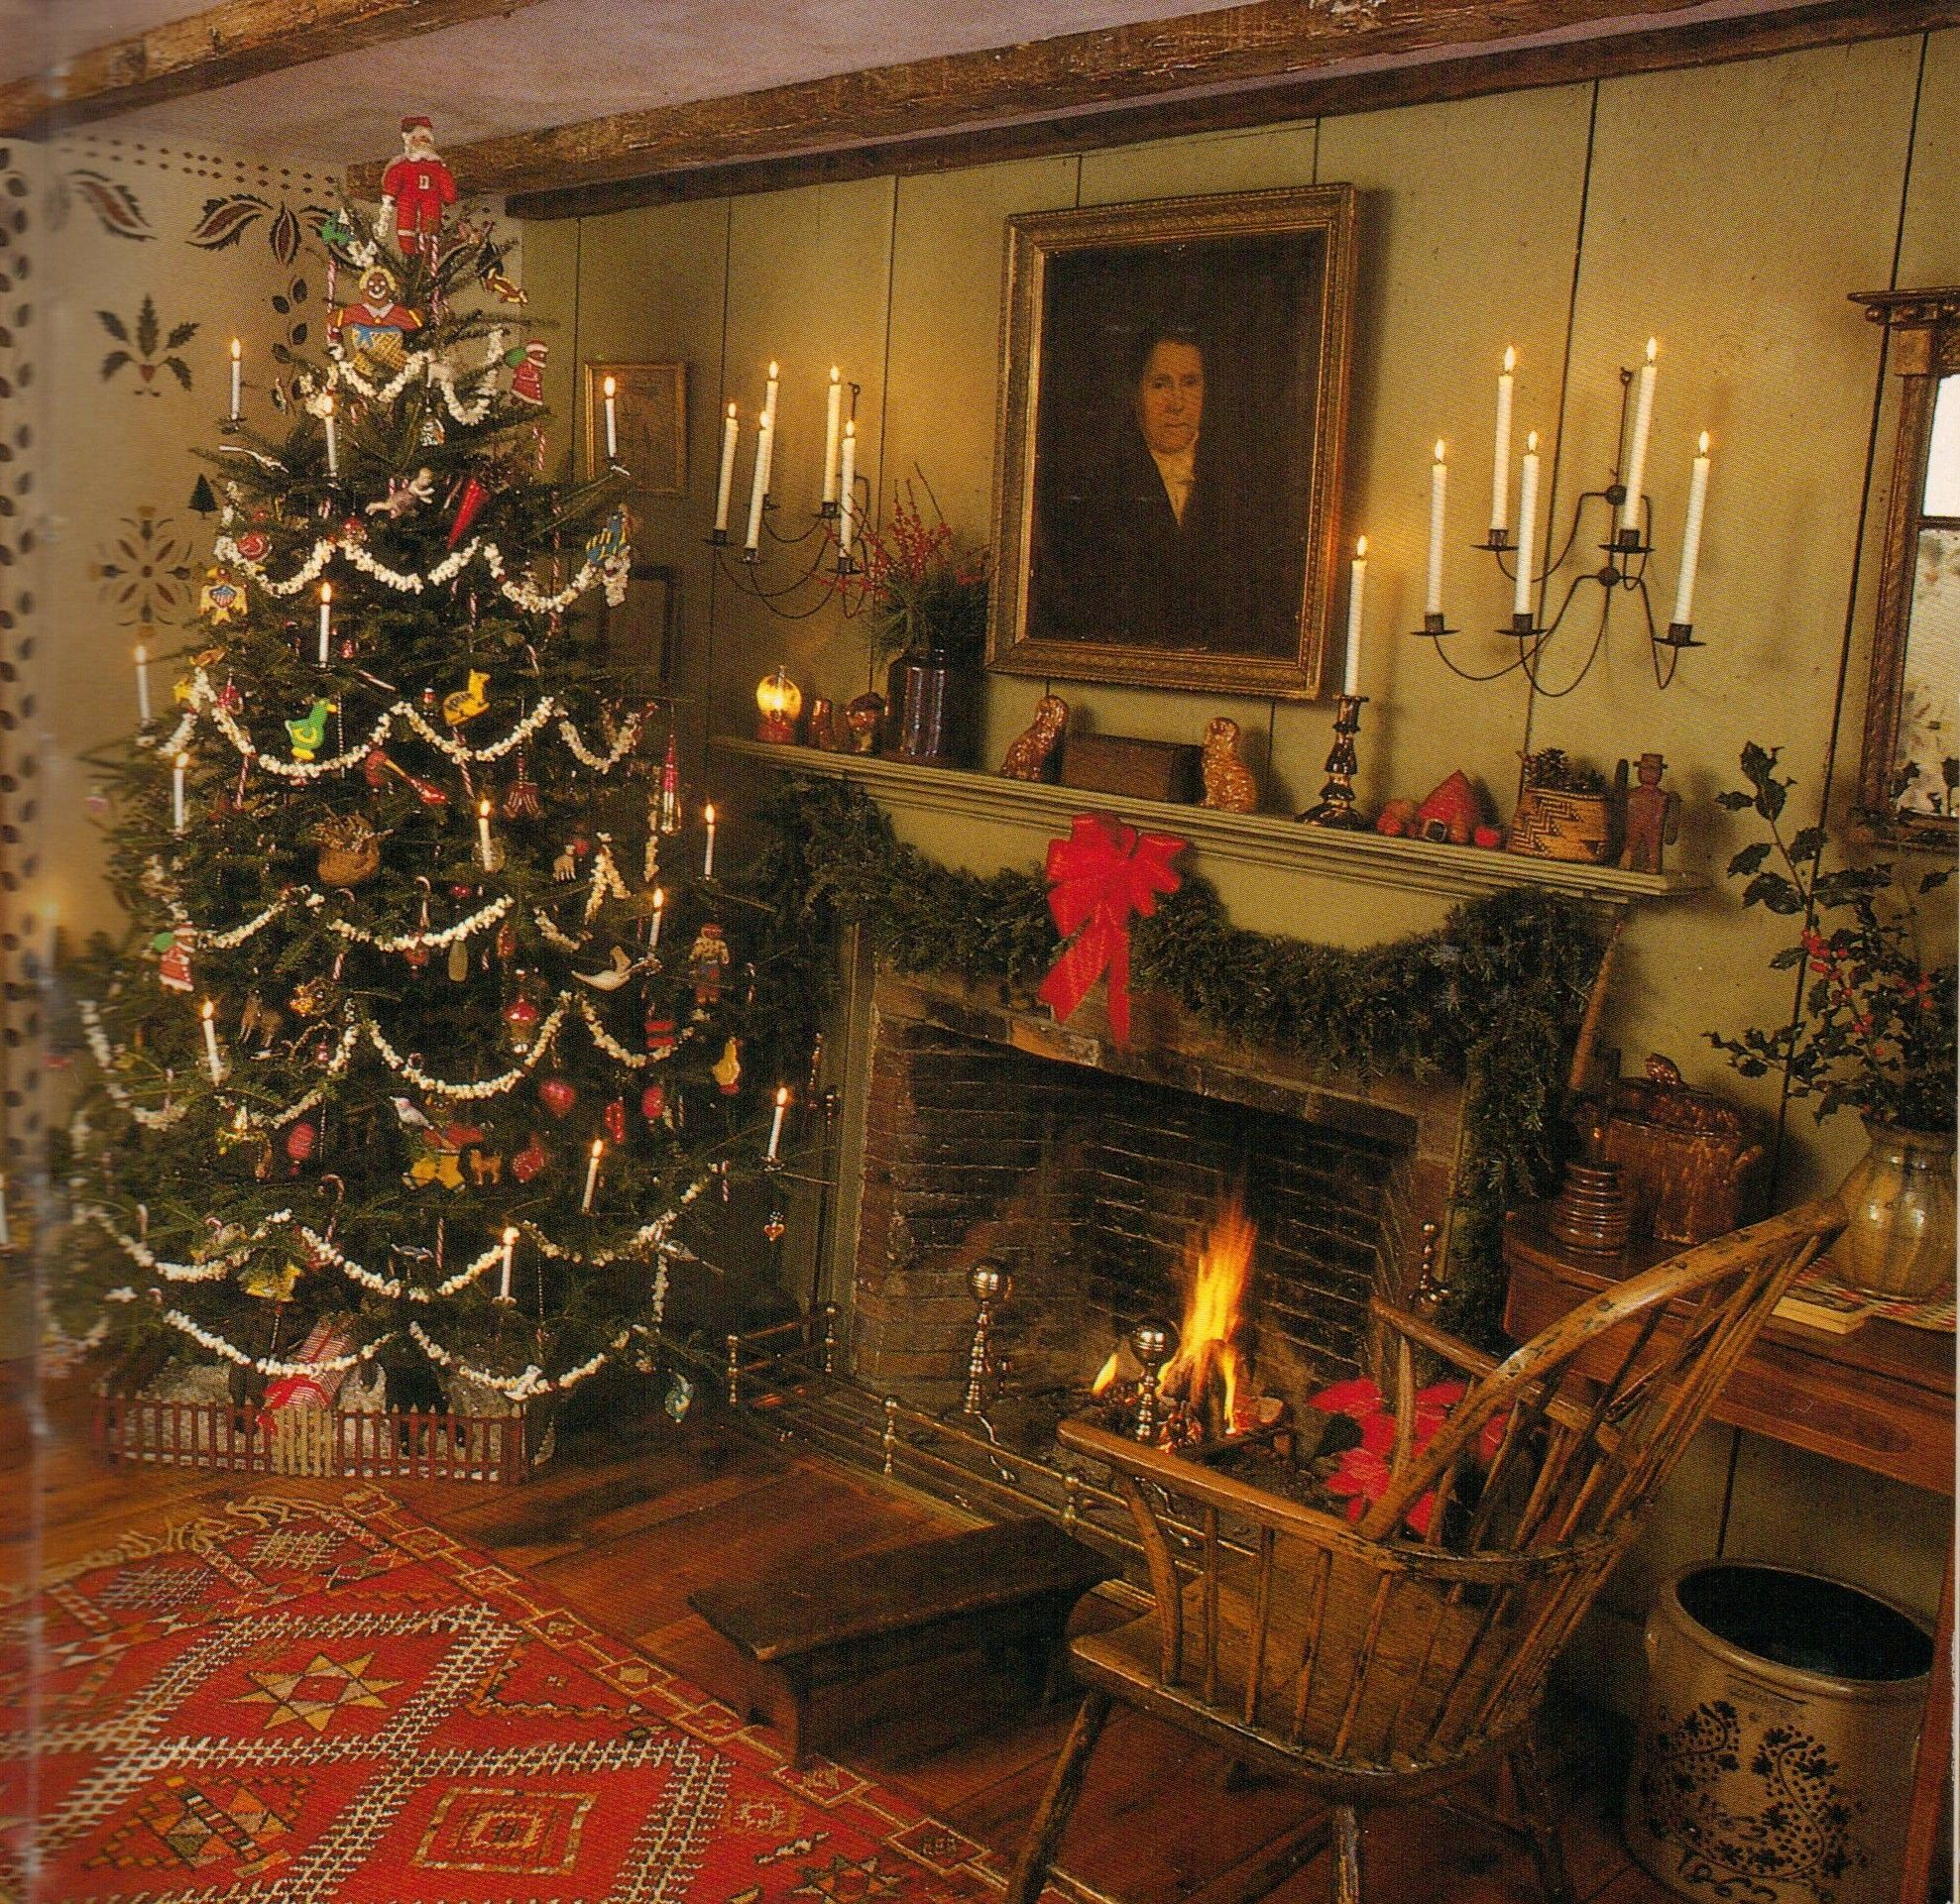 Christmas cabin interior - Great Early American Colonial Design Paired With A Country Primitive Christmas Tree